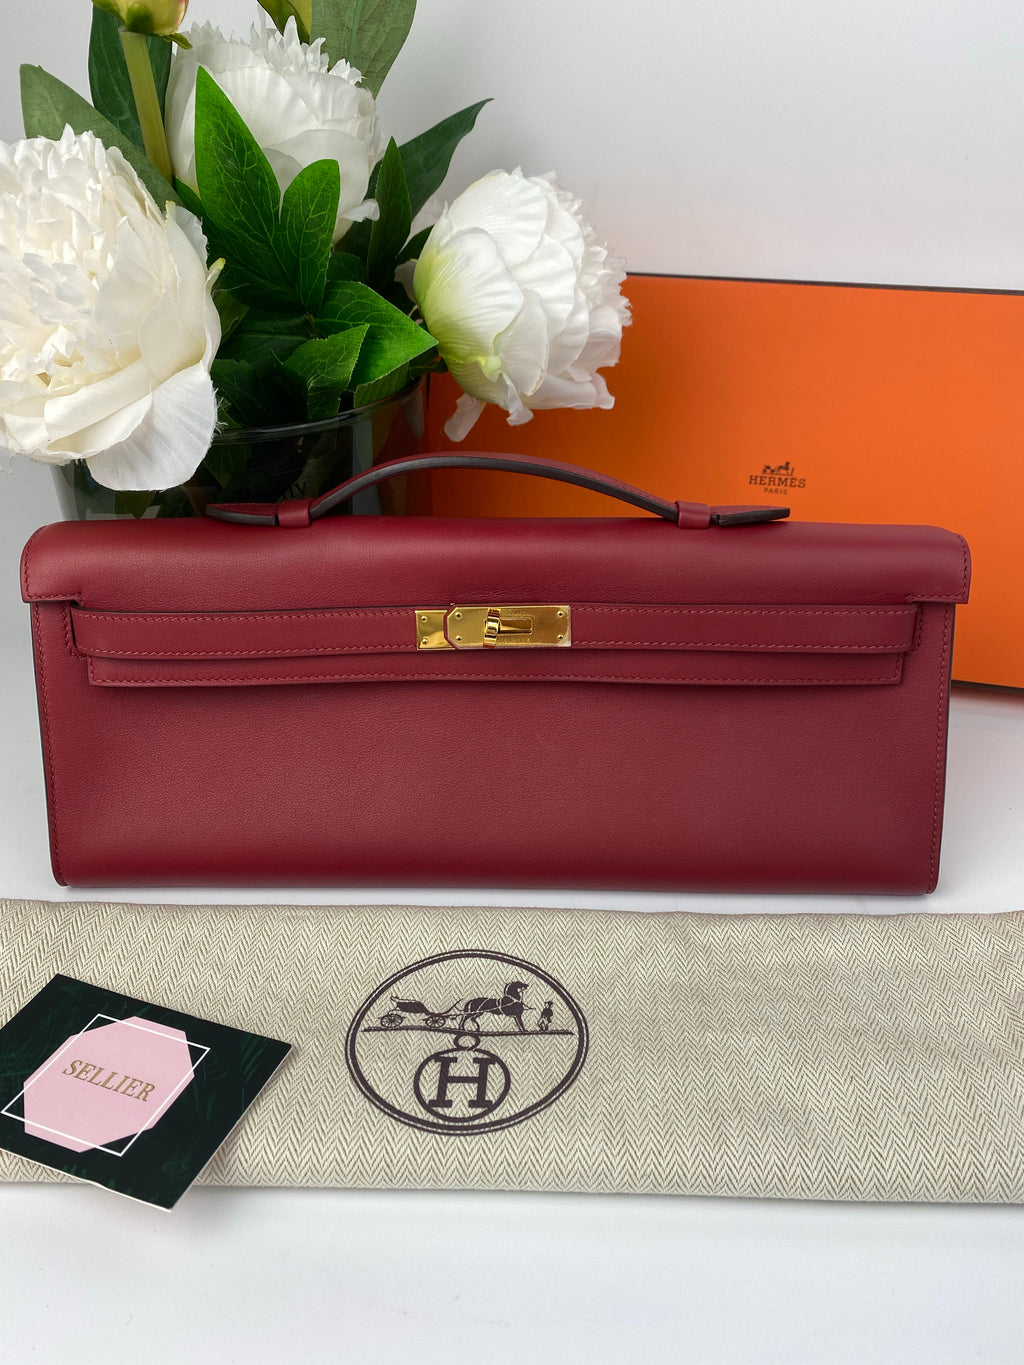 Hermes Kelly Cut in Rouge Grenat Veau Swift with Gold Hardware Bag